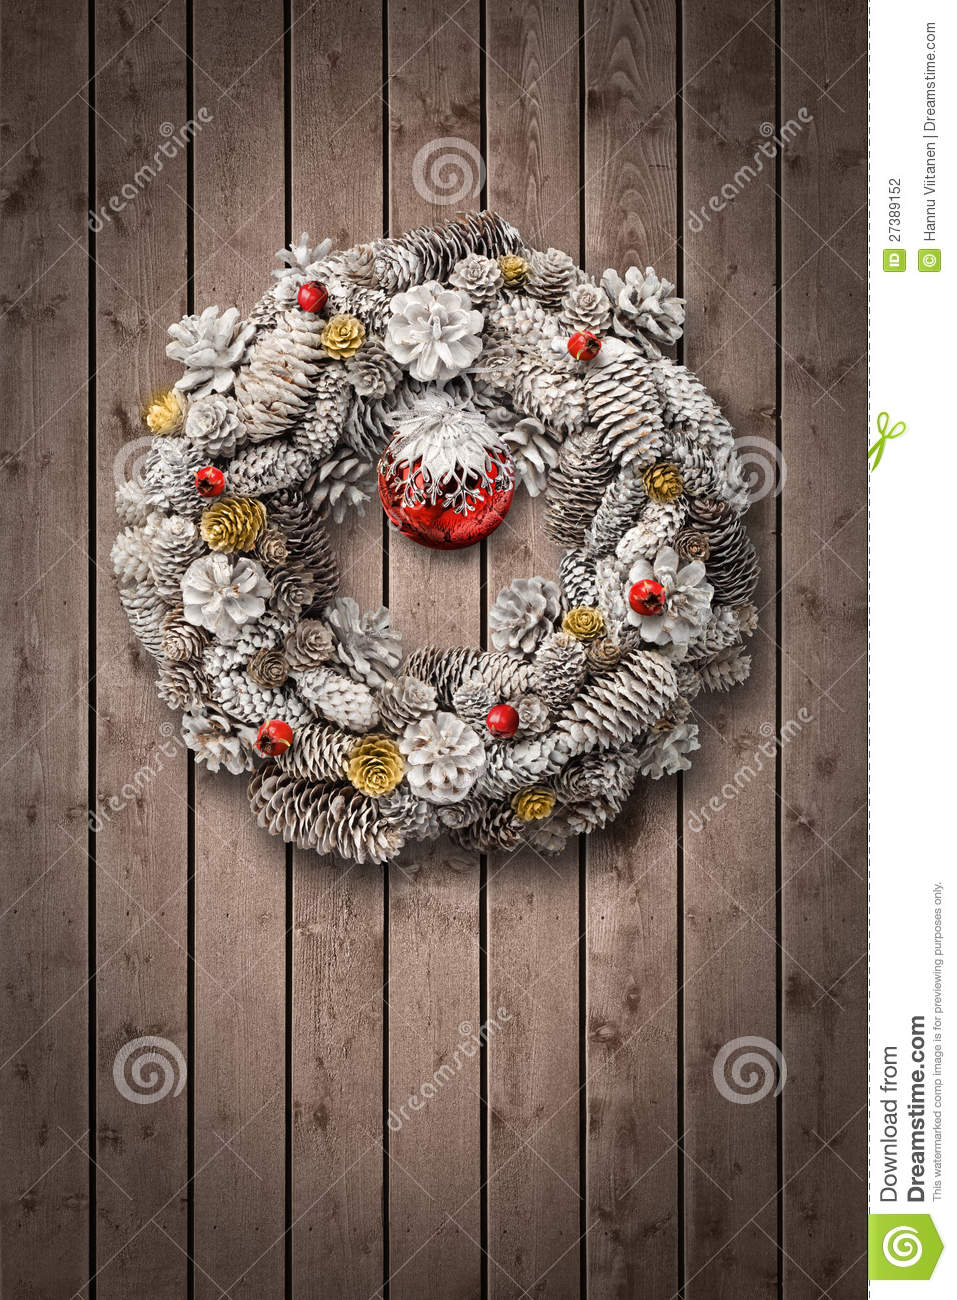 White Christmas Wreath On Wooden Door Stock Photography